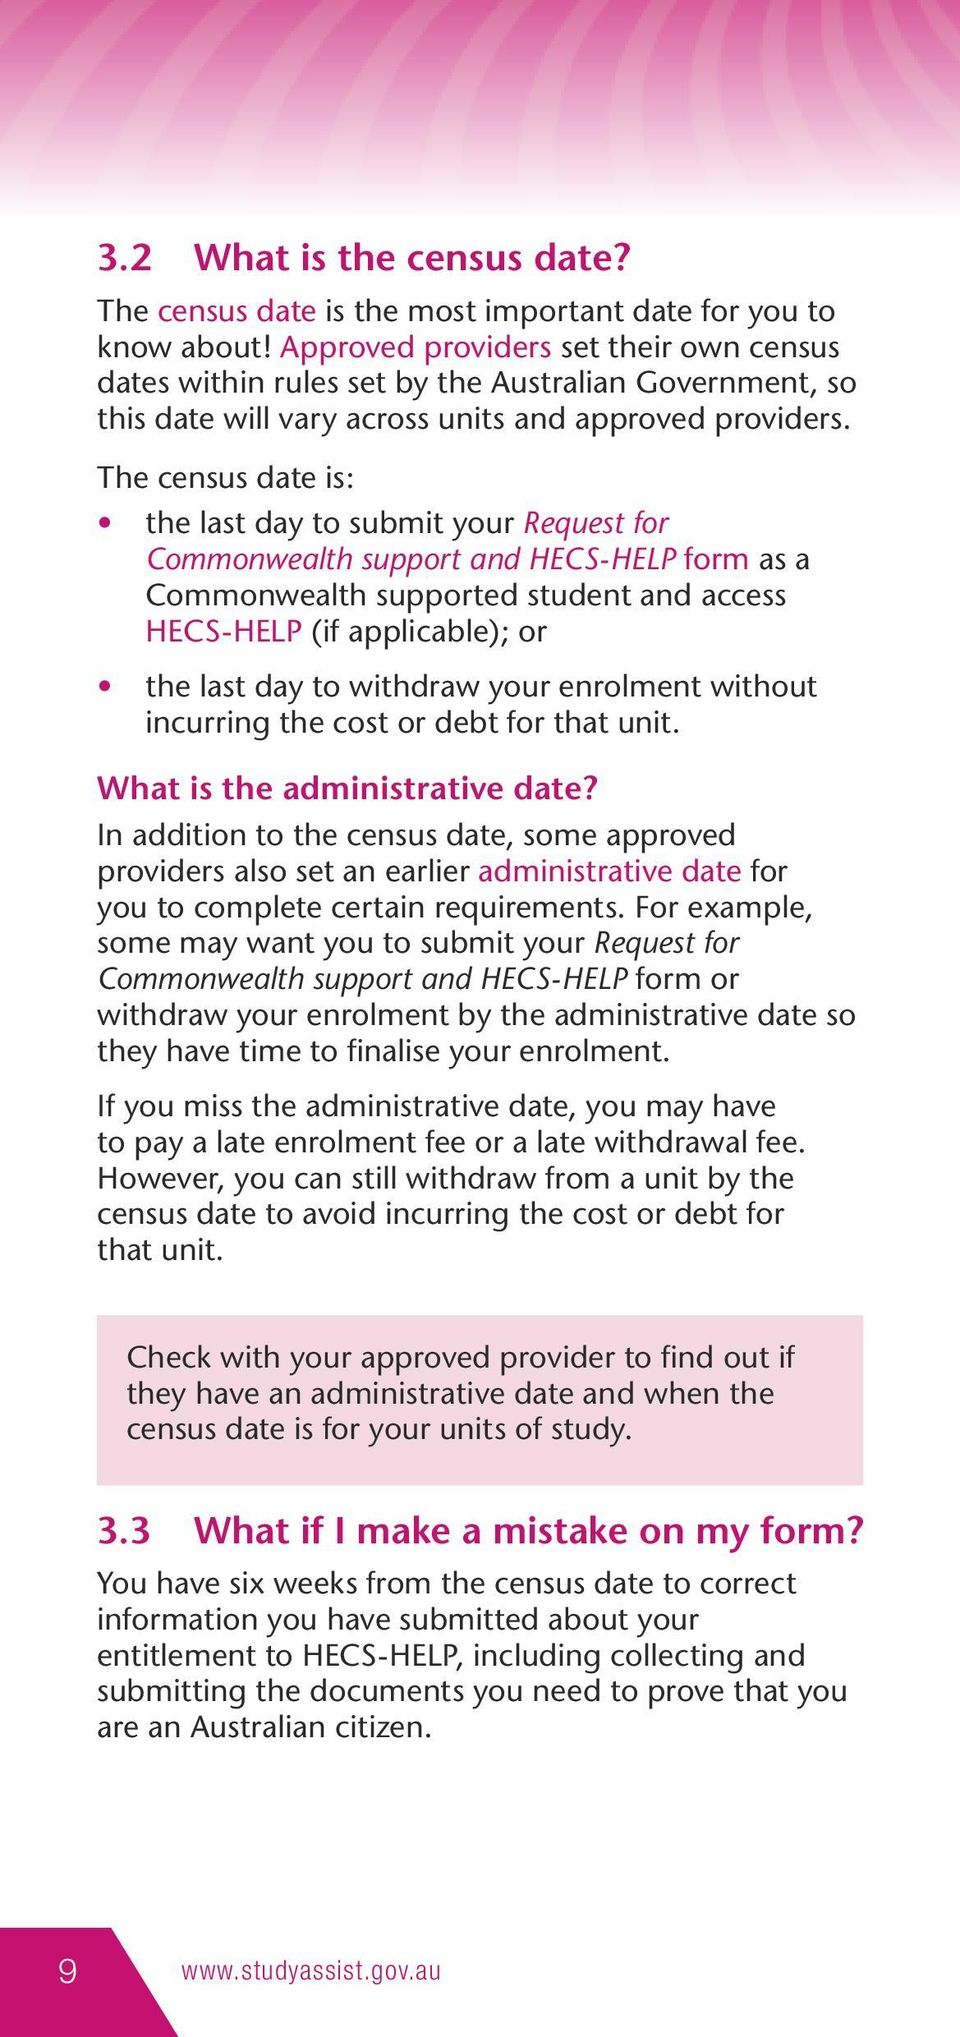 The census date is: the last day to submit your Request for Commonwealth support and HECS-HELP form as a Commonwealth supported student and access HECS-HELP (if applicable); or the last day to